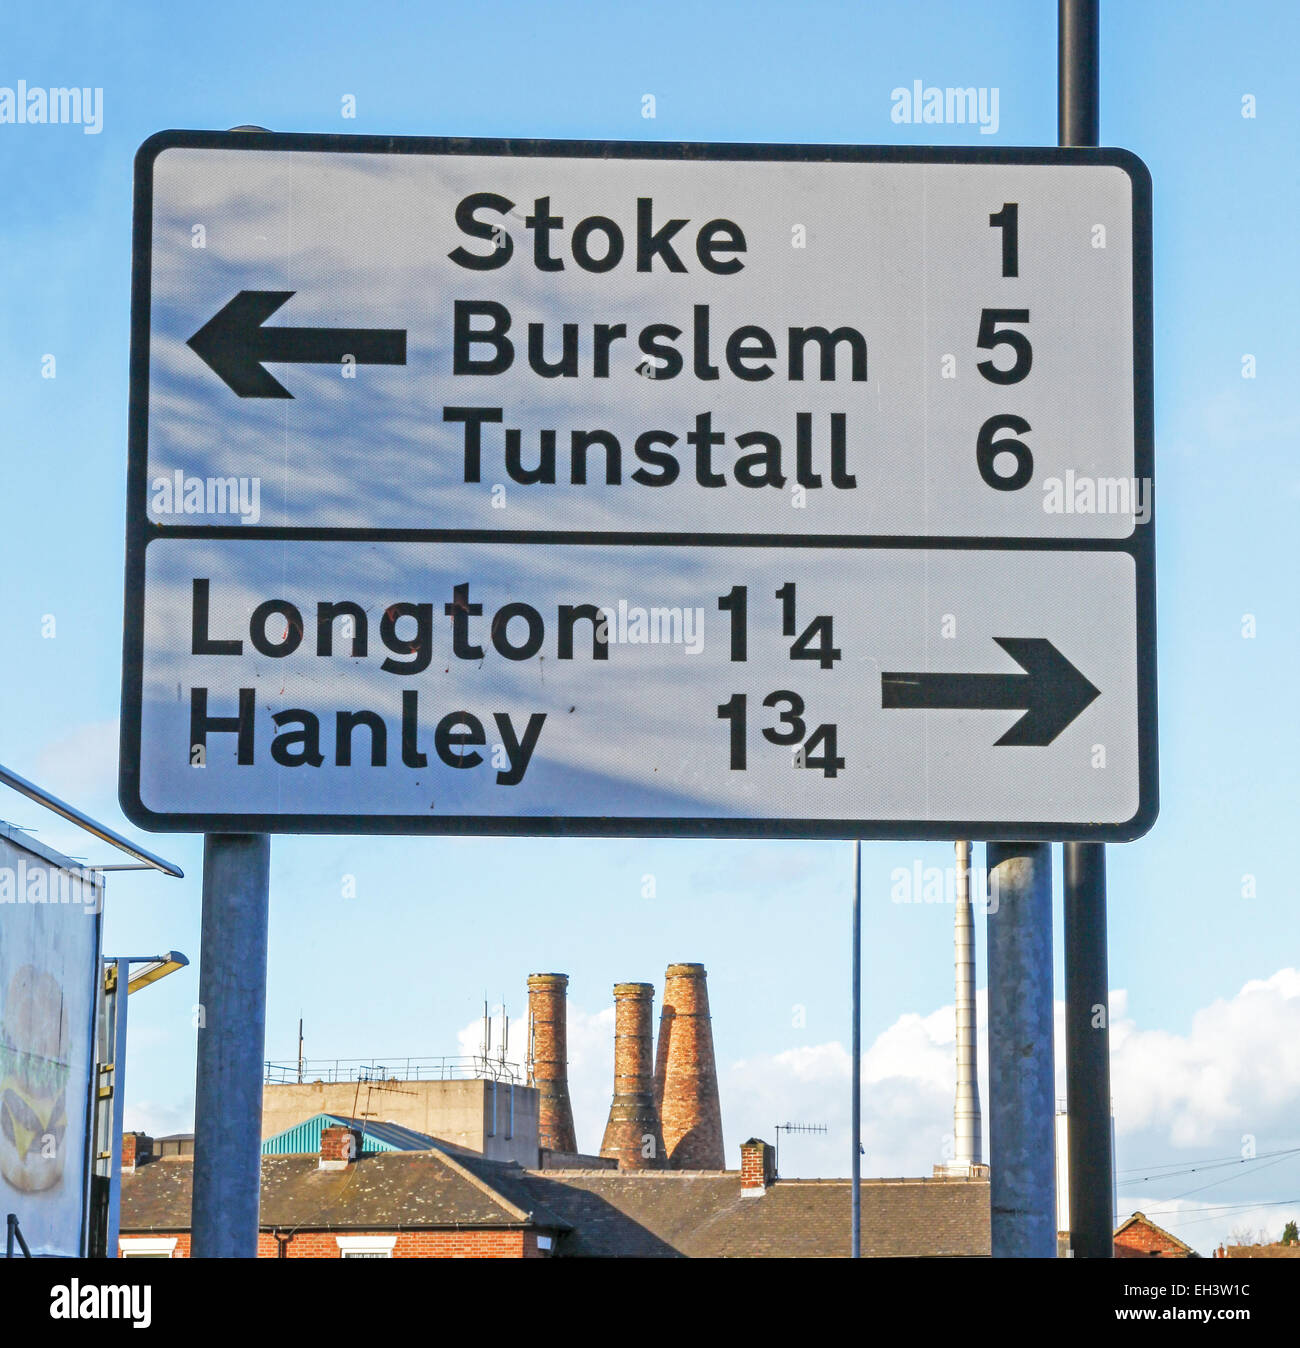 A street sign saying all the five towns of the Potteries, Stoke, Burslem, Tunstall Longton and Hanley at Fenton - Stock Image